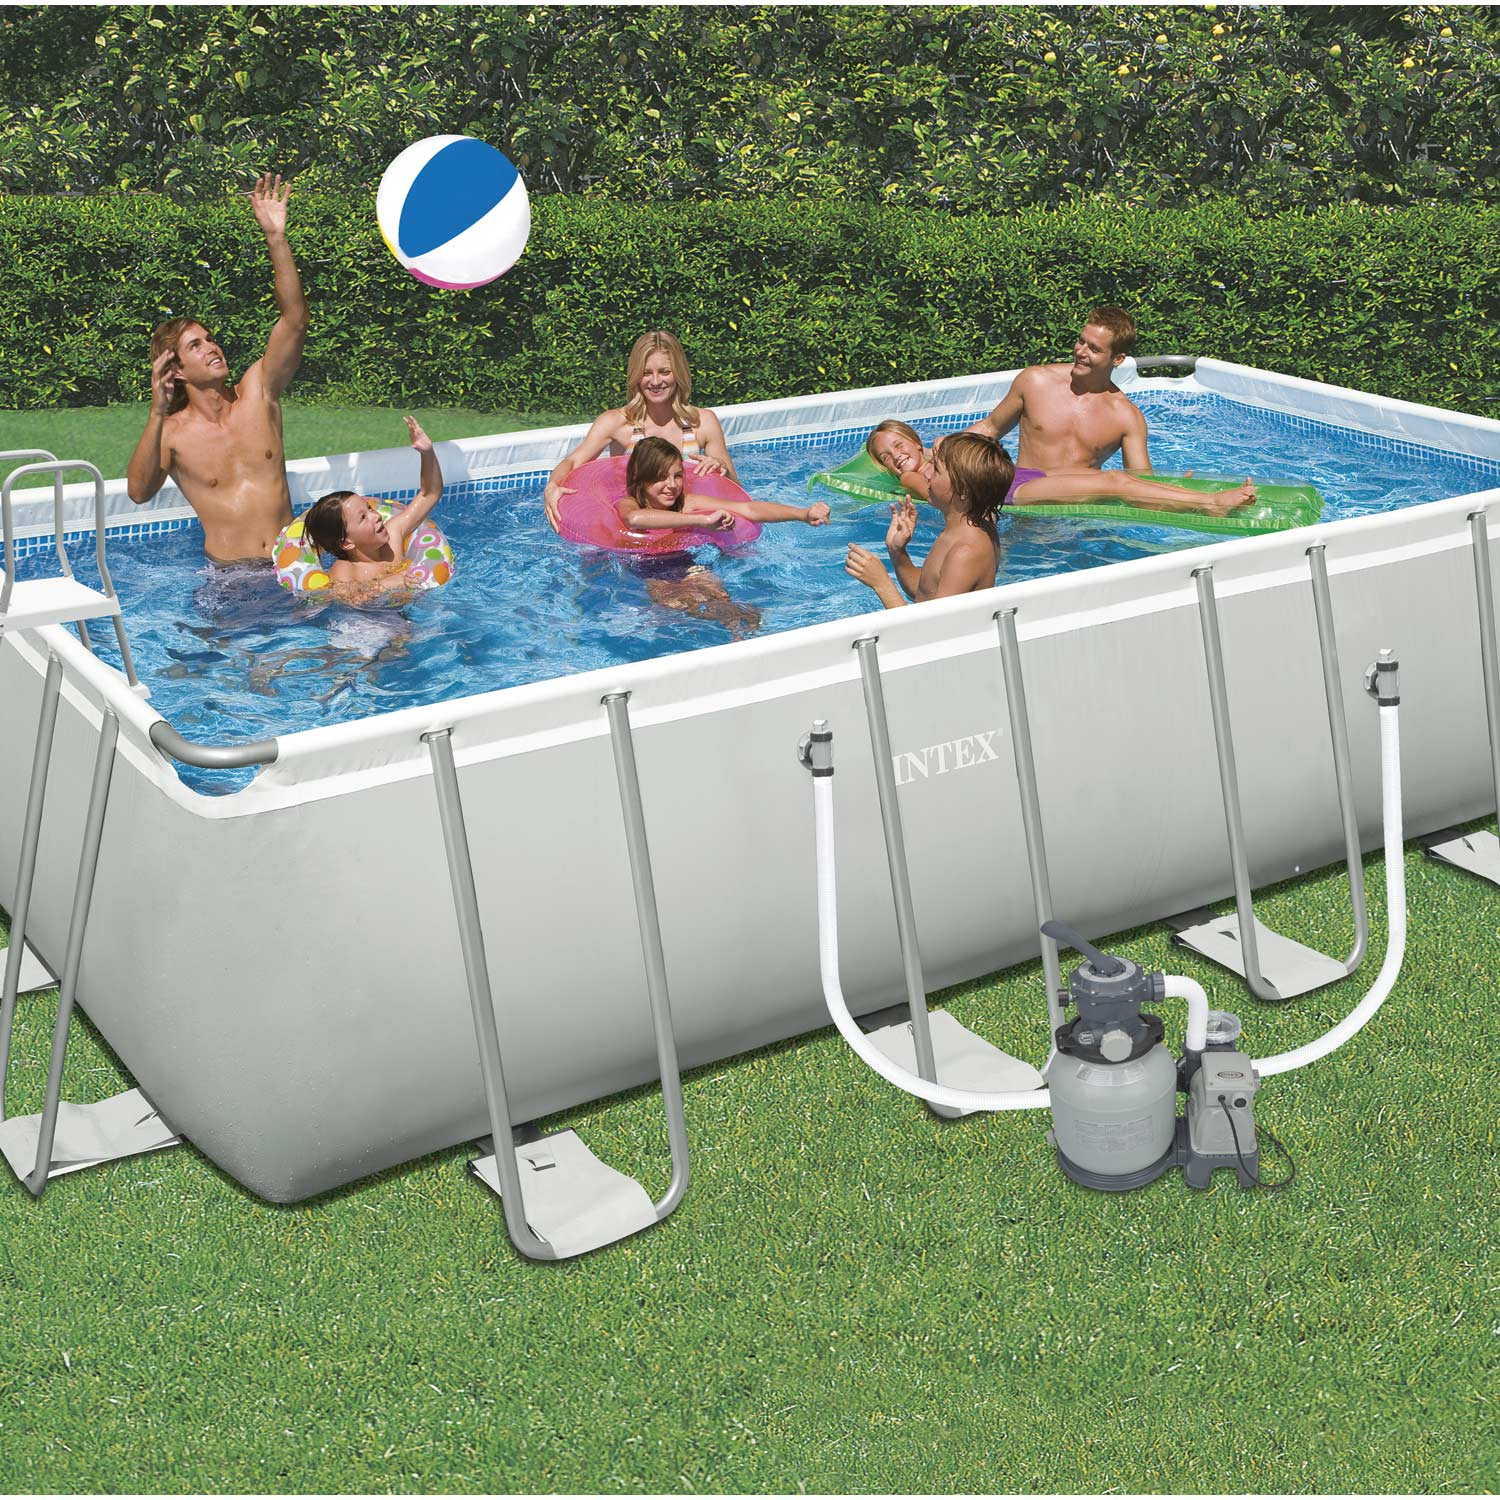 Piscine hors sol autoportante tubulaire ultra silver intex for Piscine hors sol resine